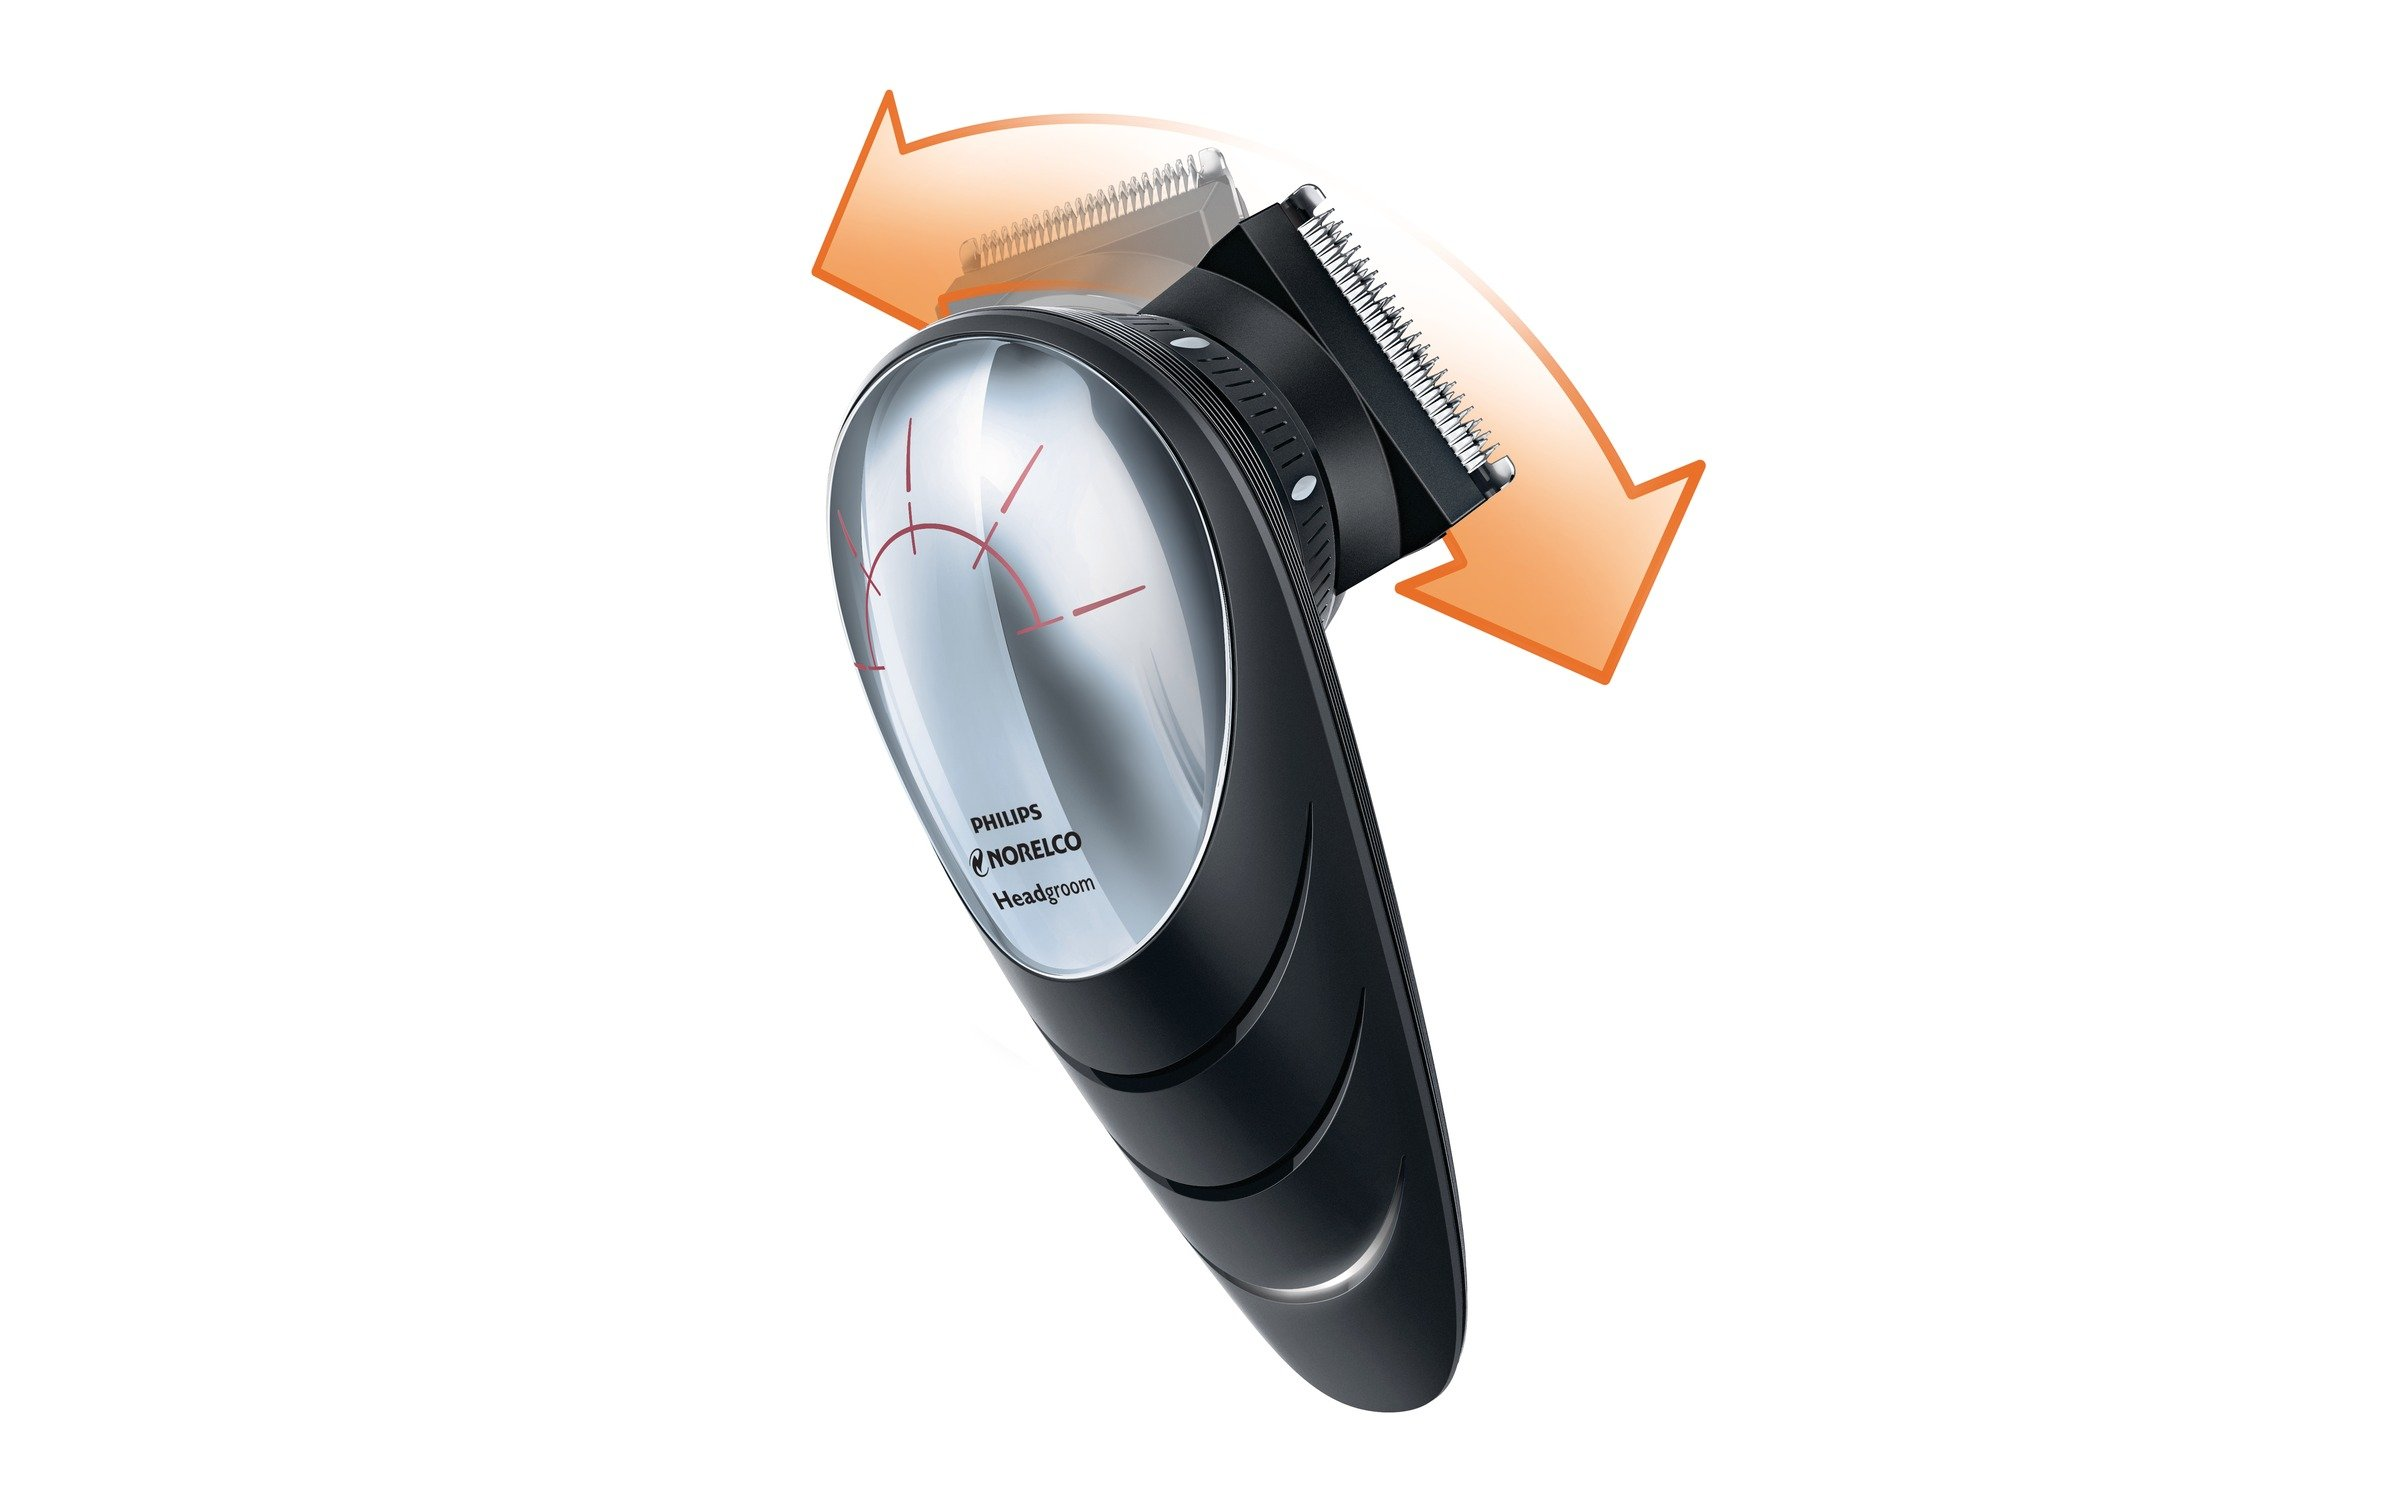 Philips Norelco QC5580/40 Do-It-Yourself Hair Clipper Pro by Philips Norelco (Image #8)